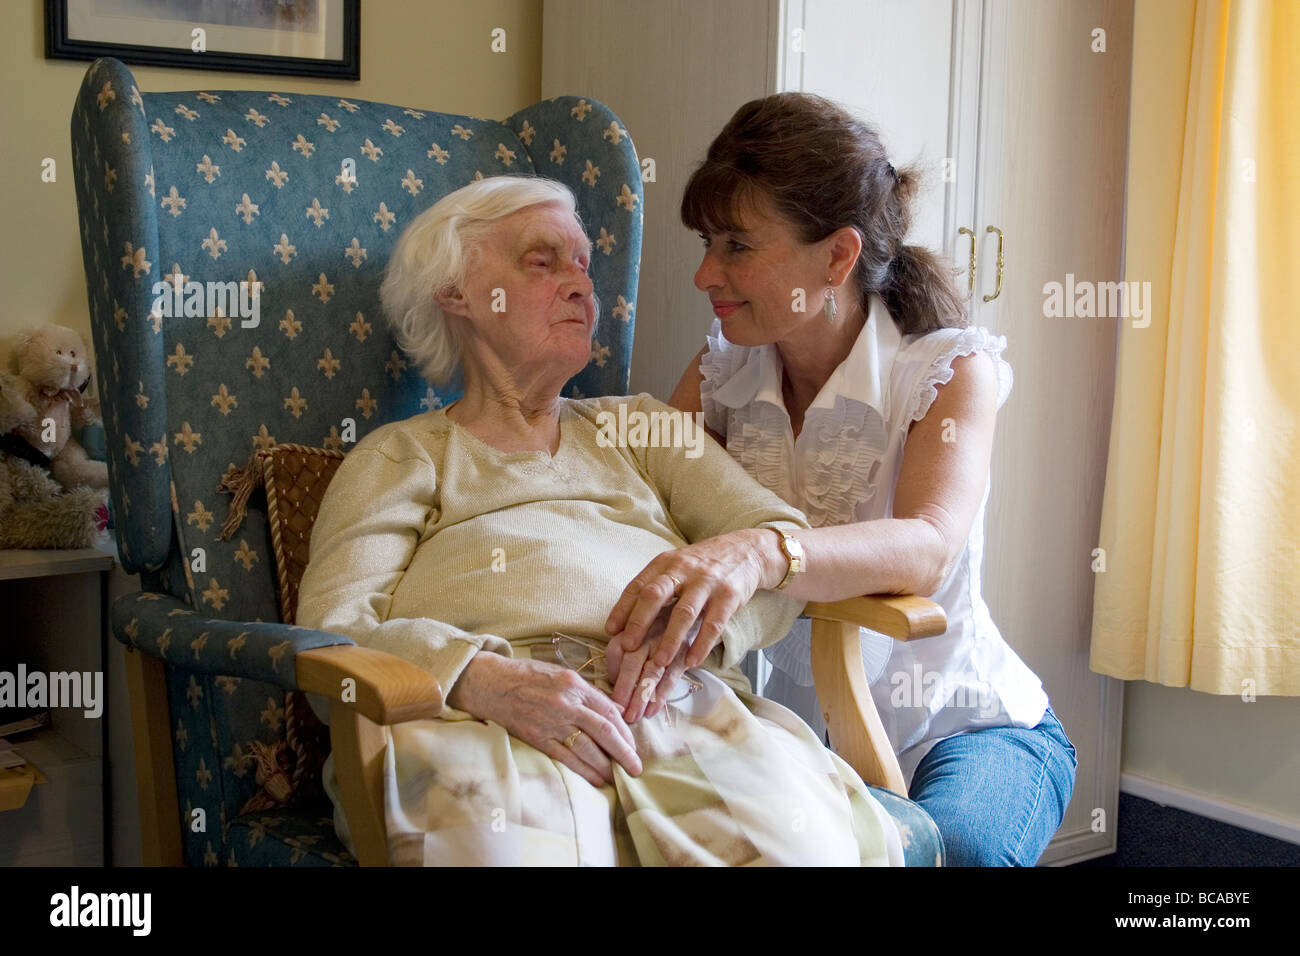 woman consoling dying old lady with bruised eye in nursing home - Stock Image